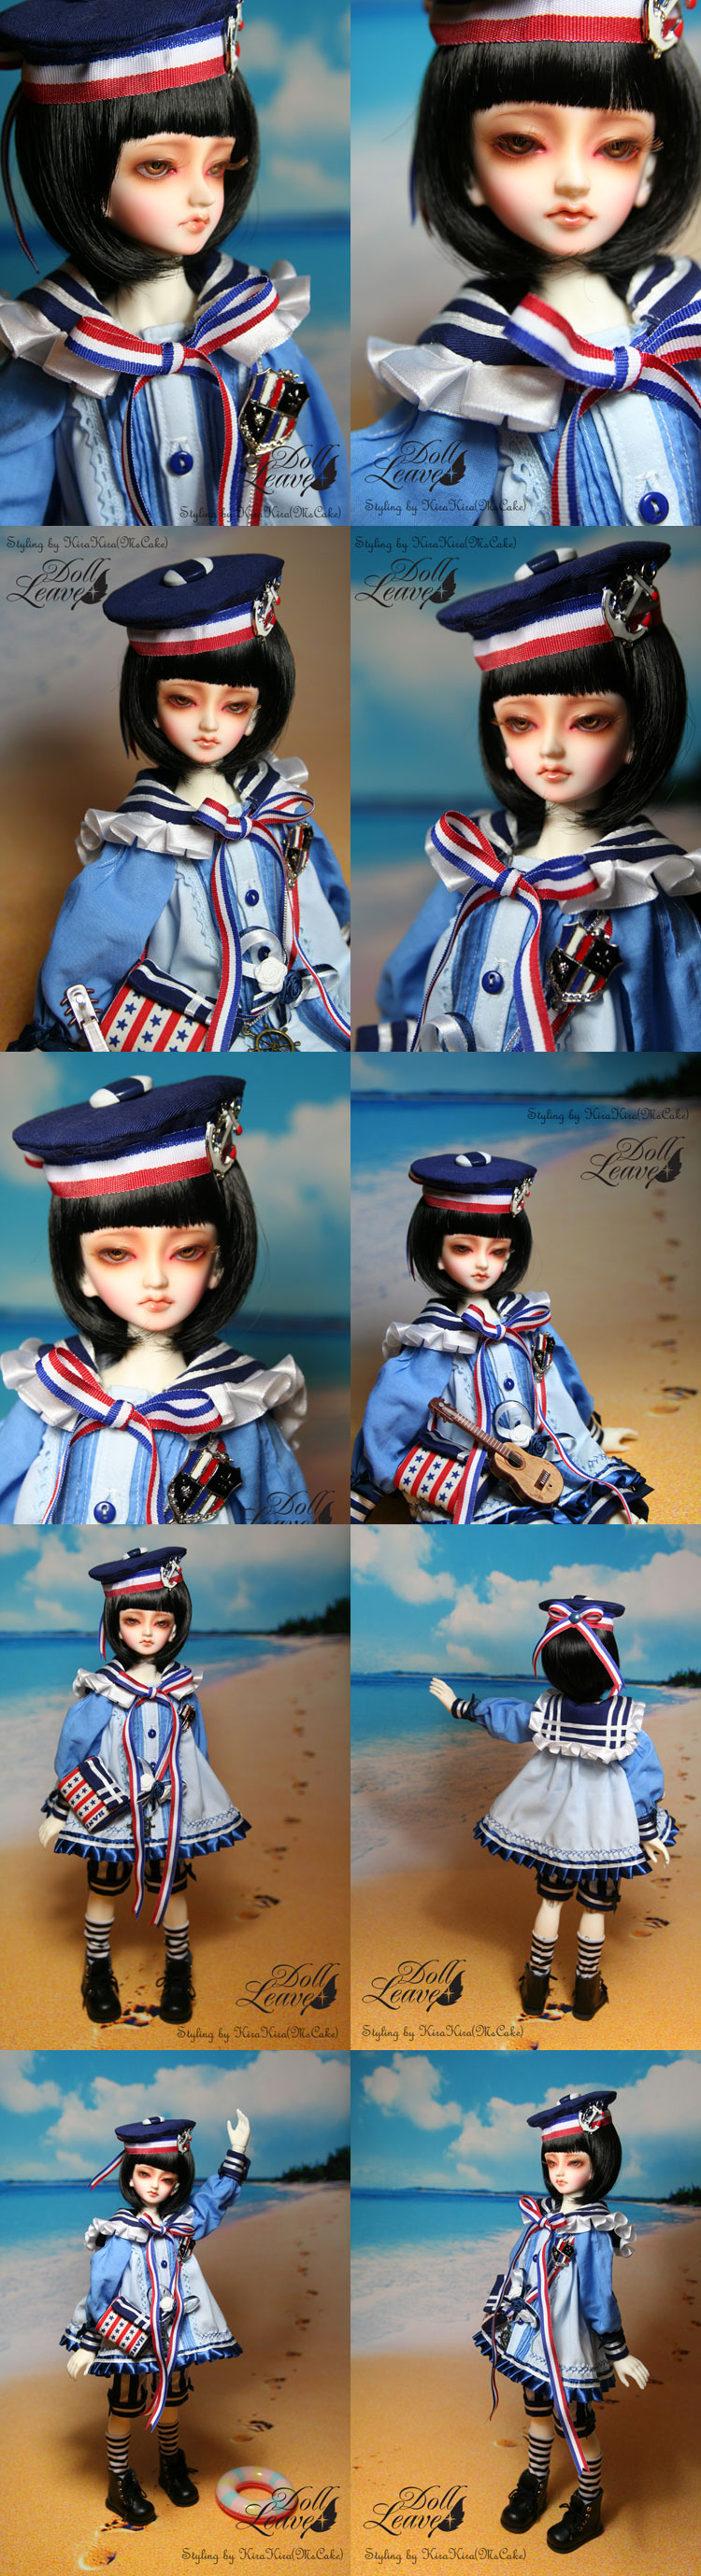 BJD Blue Boy 42cm Boll-jointed doll